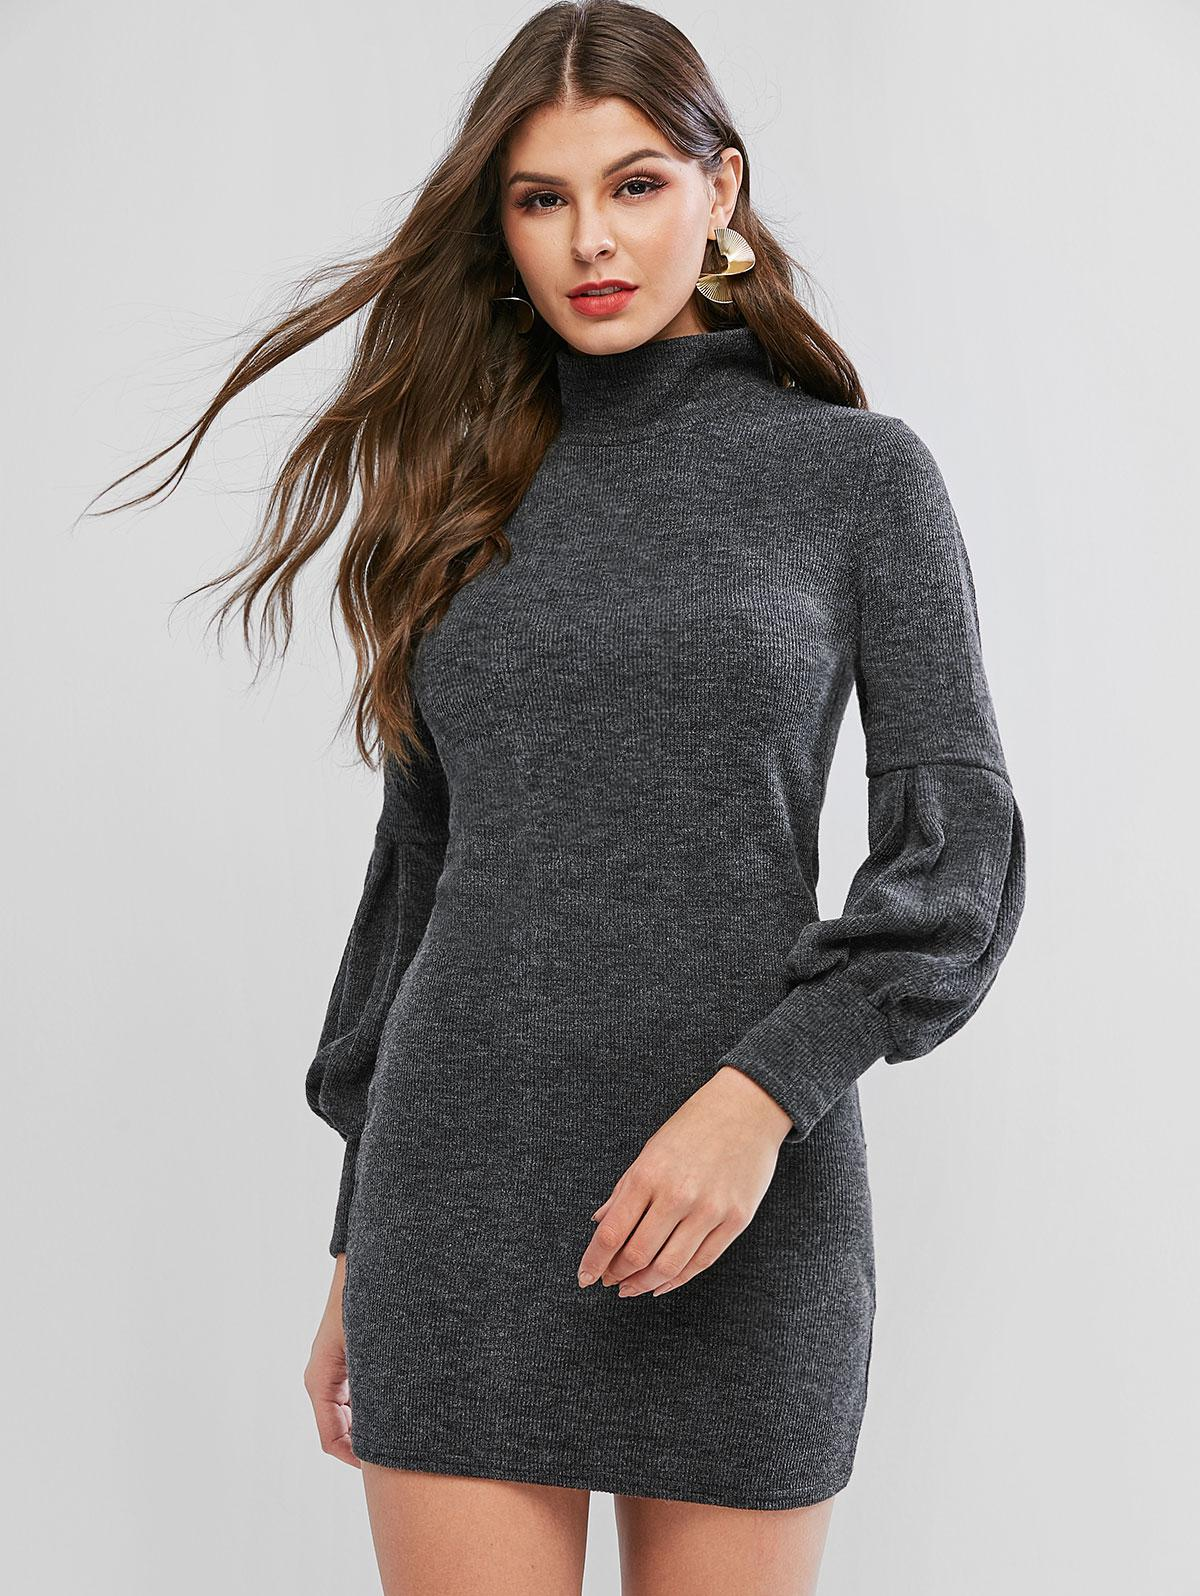 Lantern Sleeve High Neck Short Sweater Dress